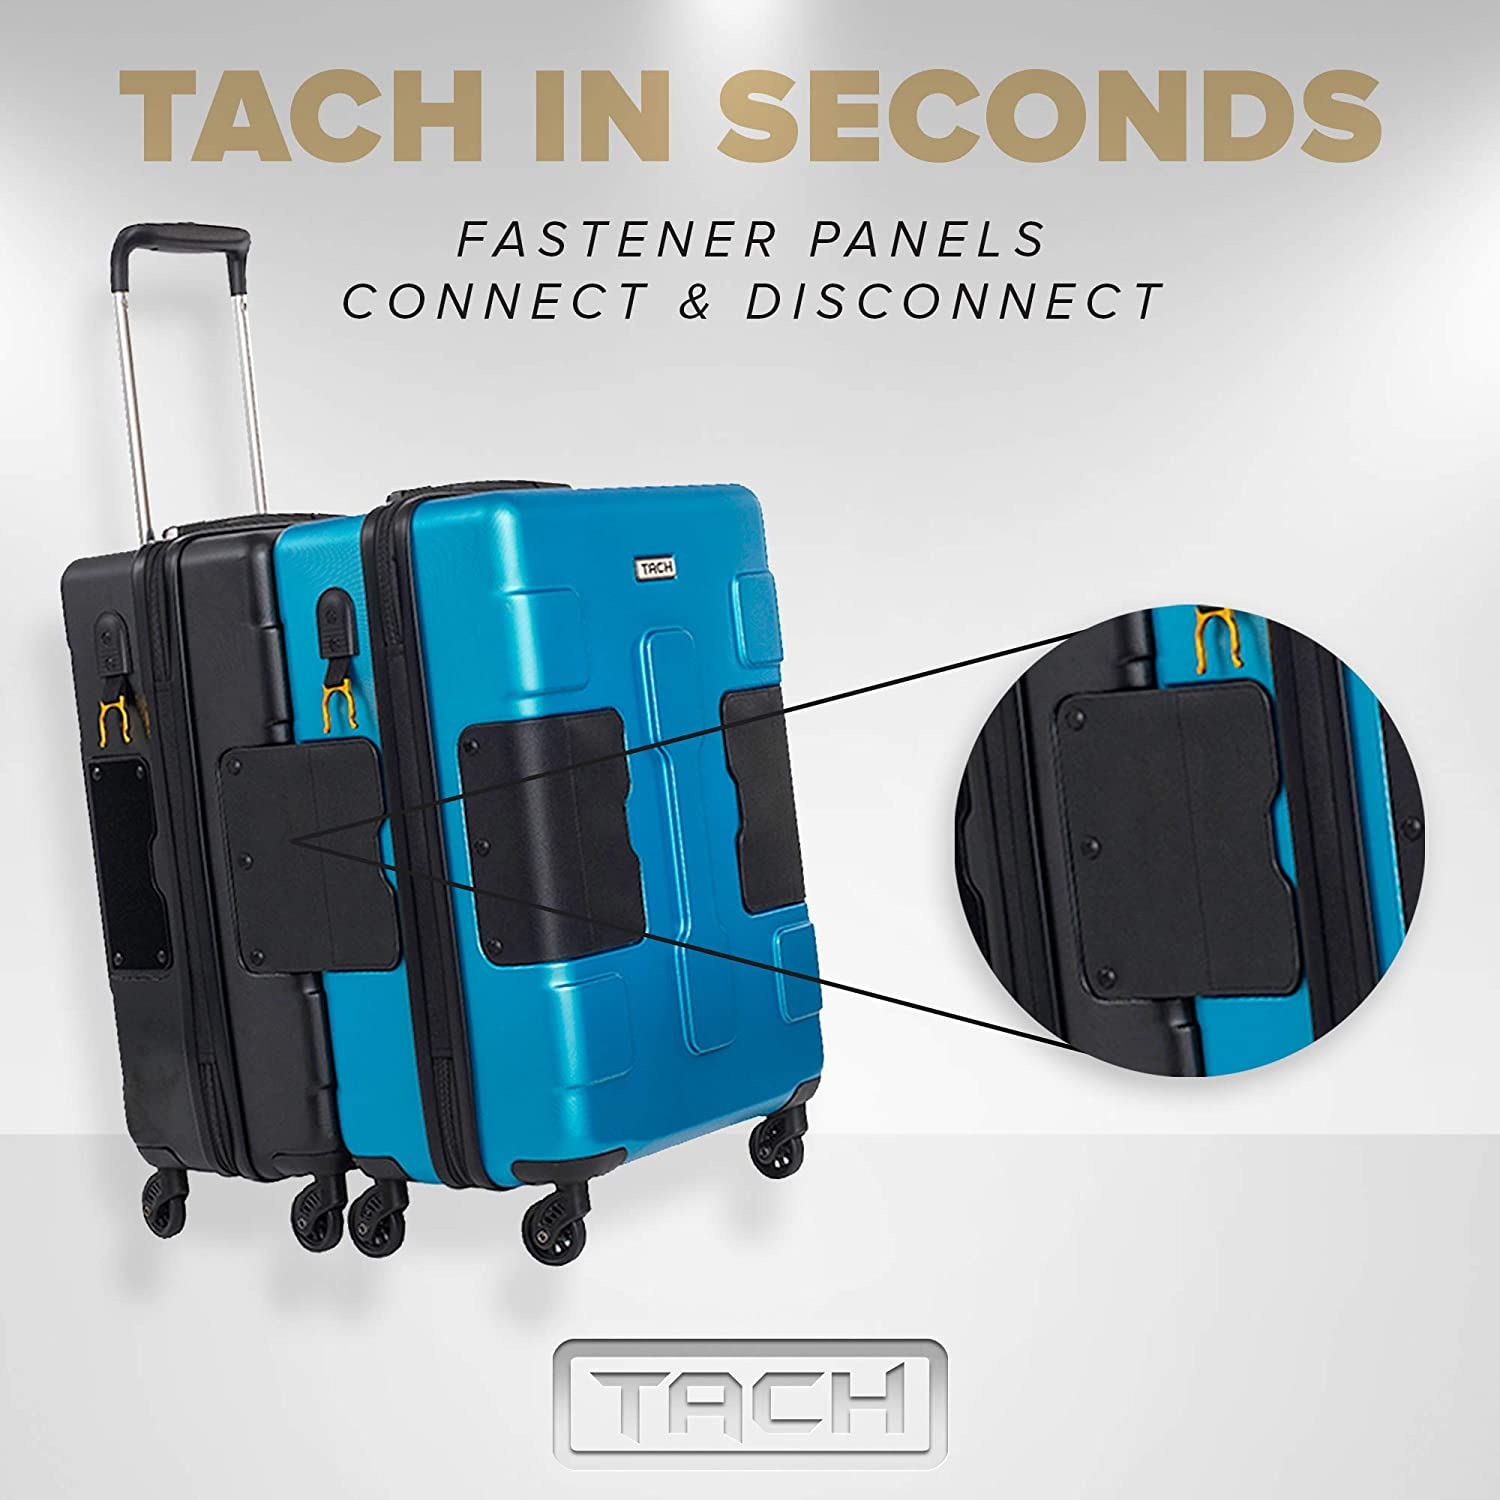 TACH TUFF 3-Piece Hardcase Connectable Luggage /& Carryon Travel Bag Set Rolling Suitcase with Patented Built-In Connecting System Easily Link /& Carry 9 Bags At Once purple